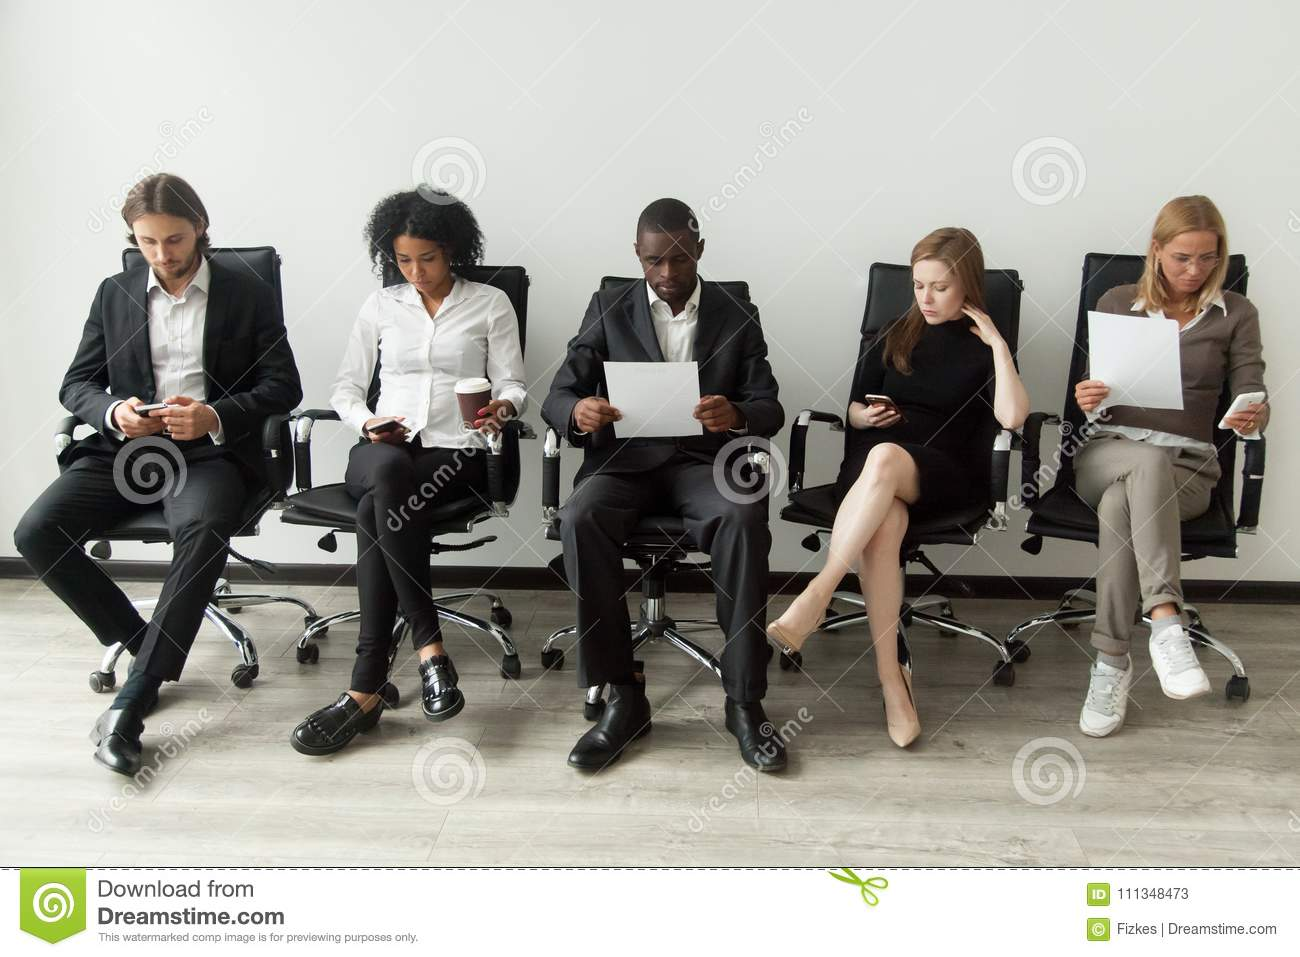 Nervous stressed job applicants preparing for interview waiting